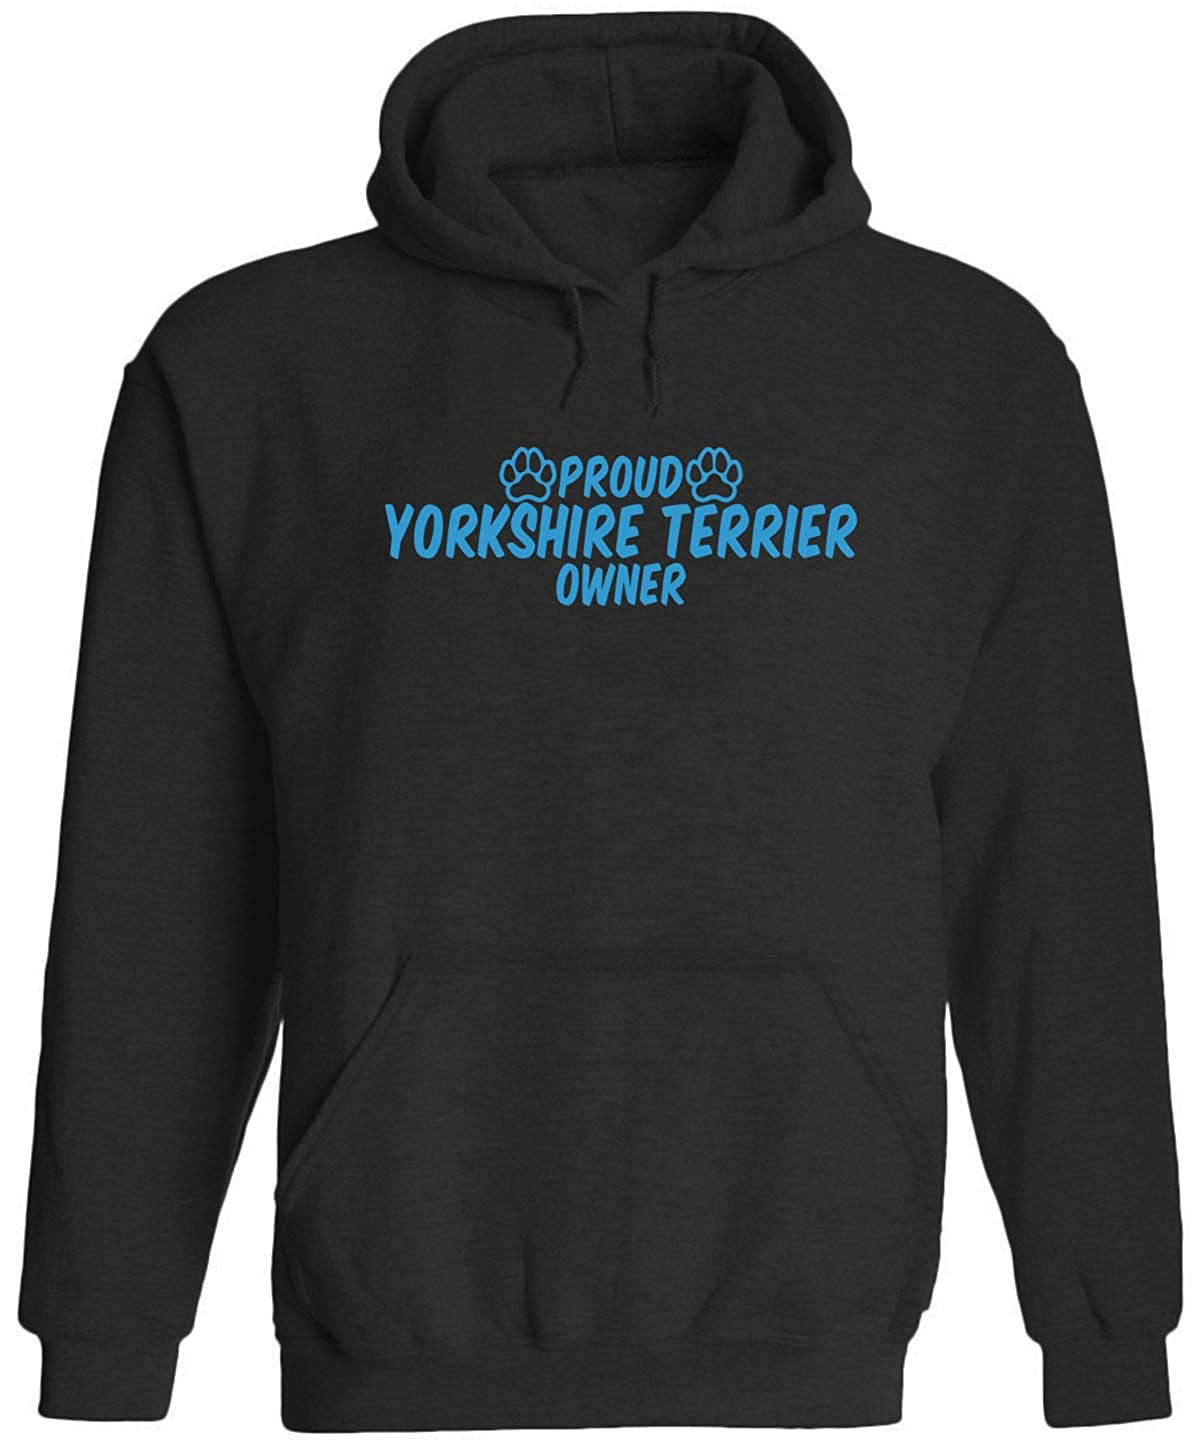 Unisex Adult Hooded Pullover Sweatshirt Austin Ink Apparel Proud Yorkshire Terrier Owner Blue